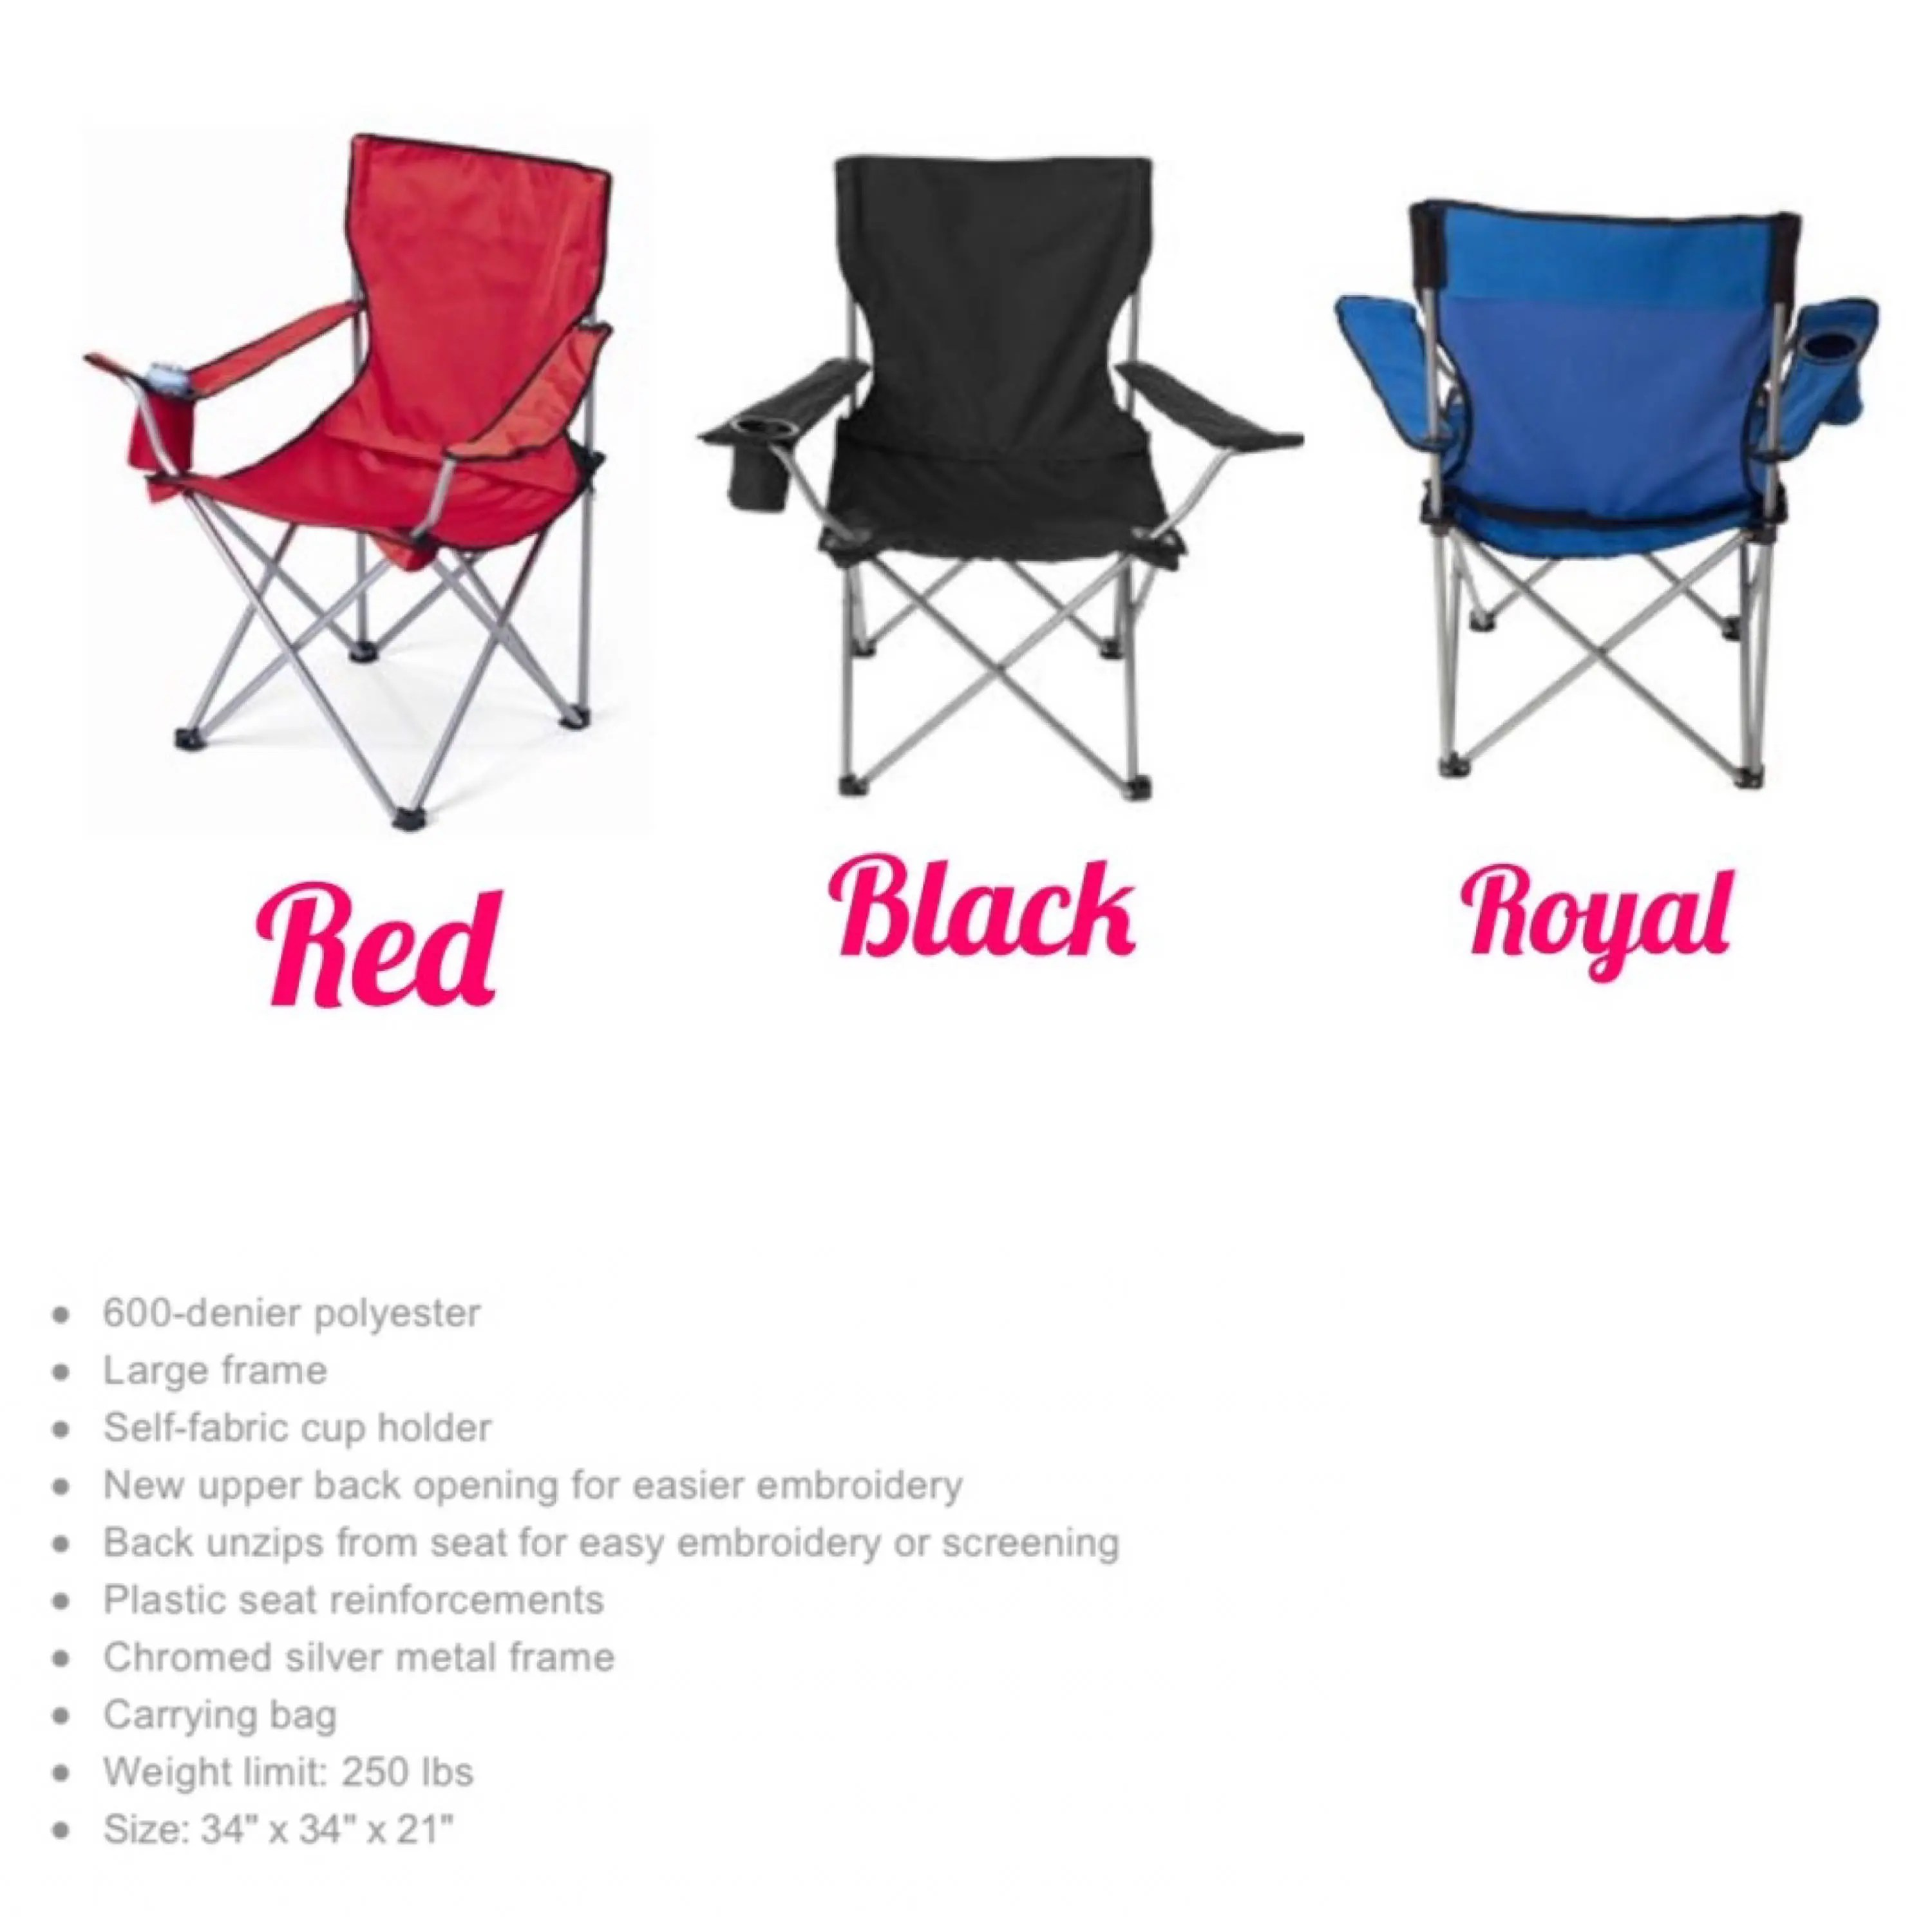 portable chairs for golf tournaments reclining office custom printed folding chair with carrying bag check this